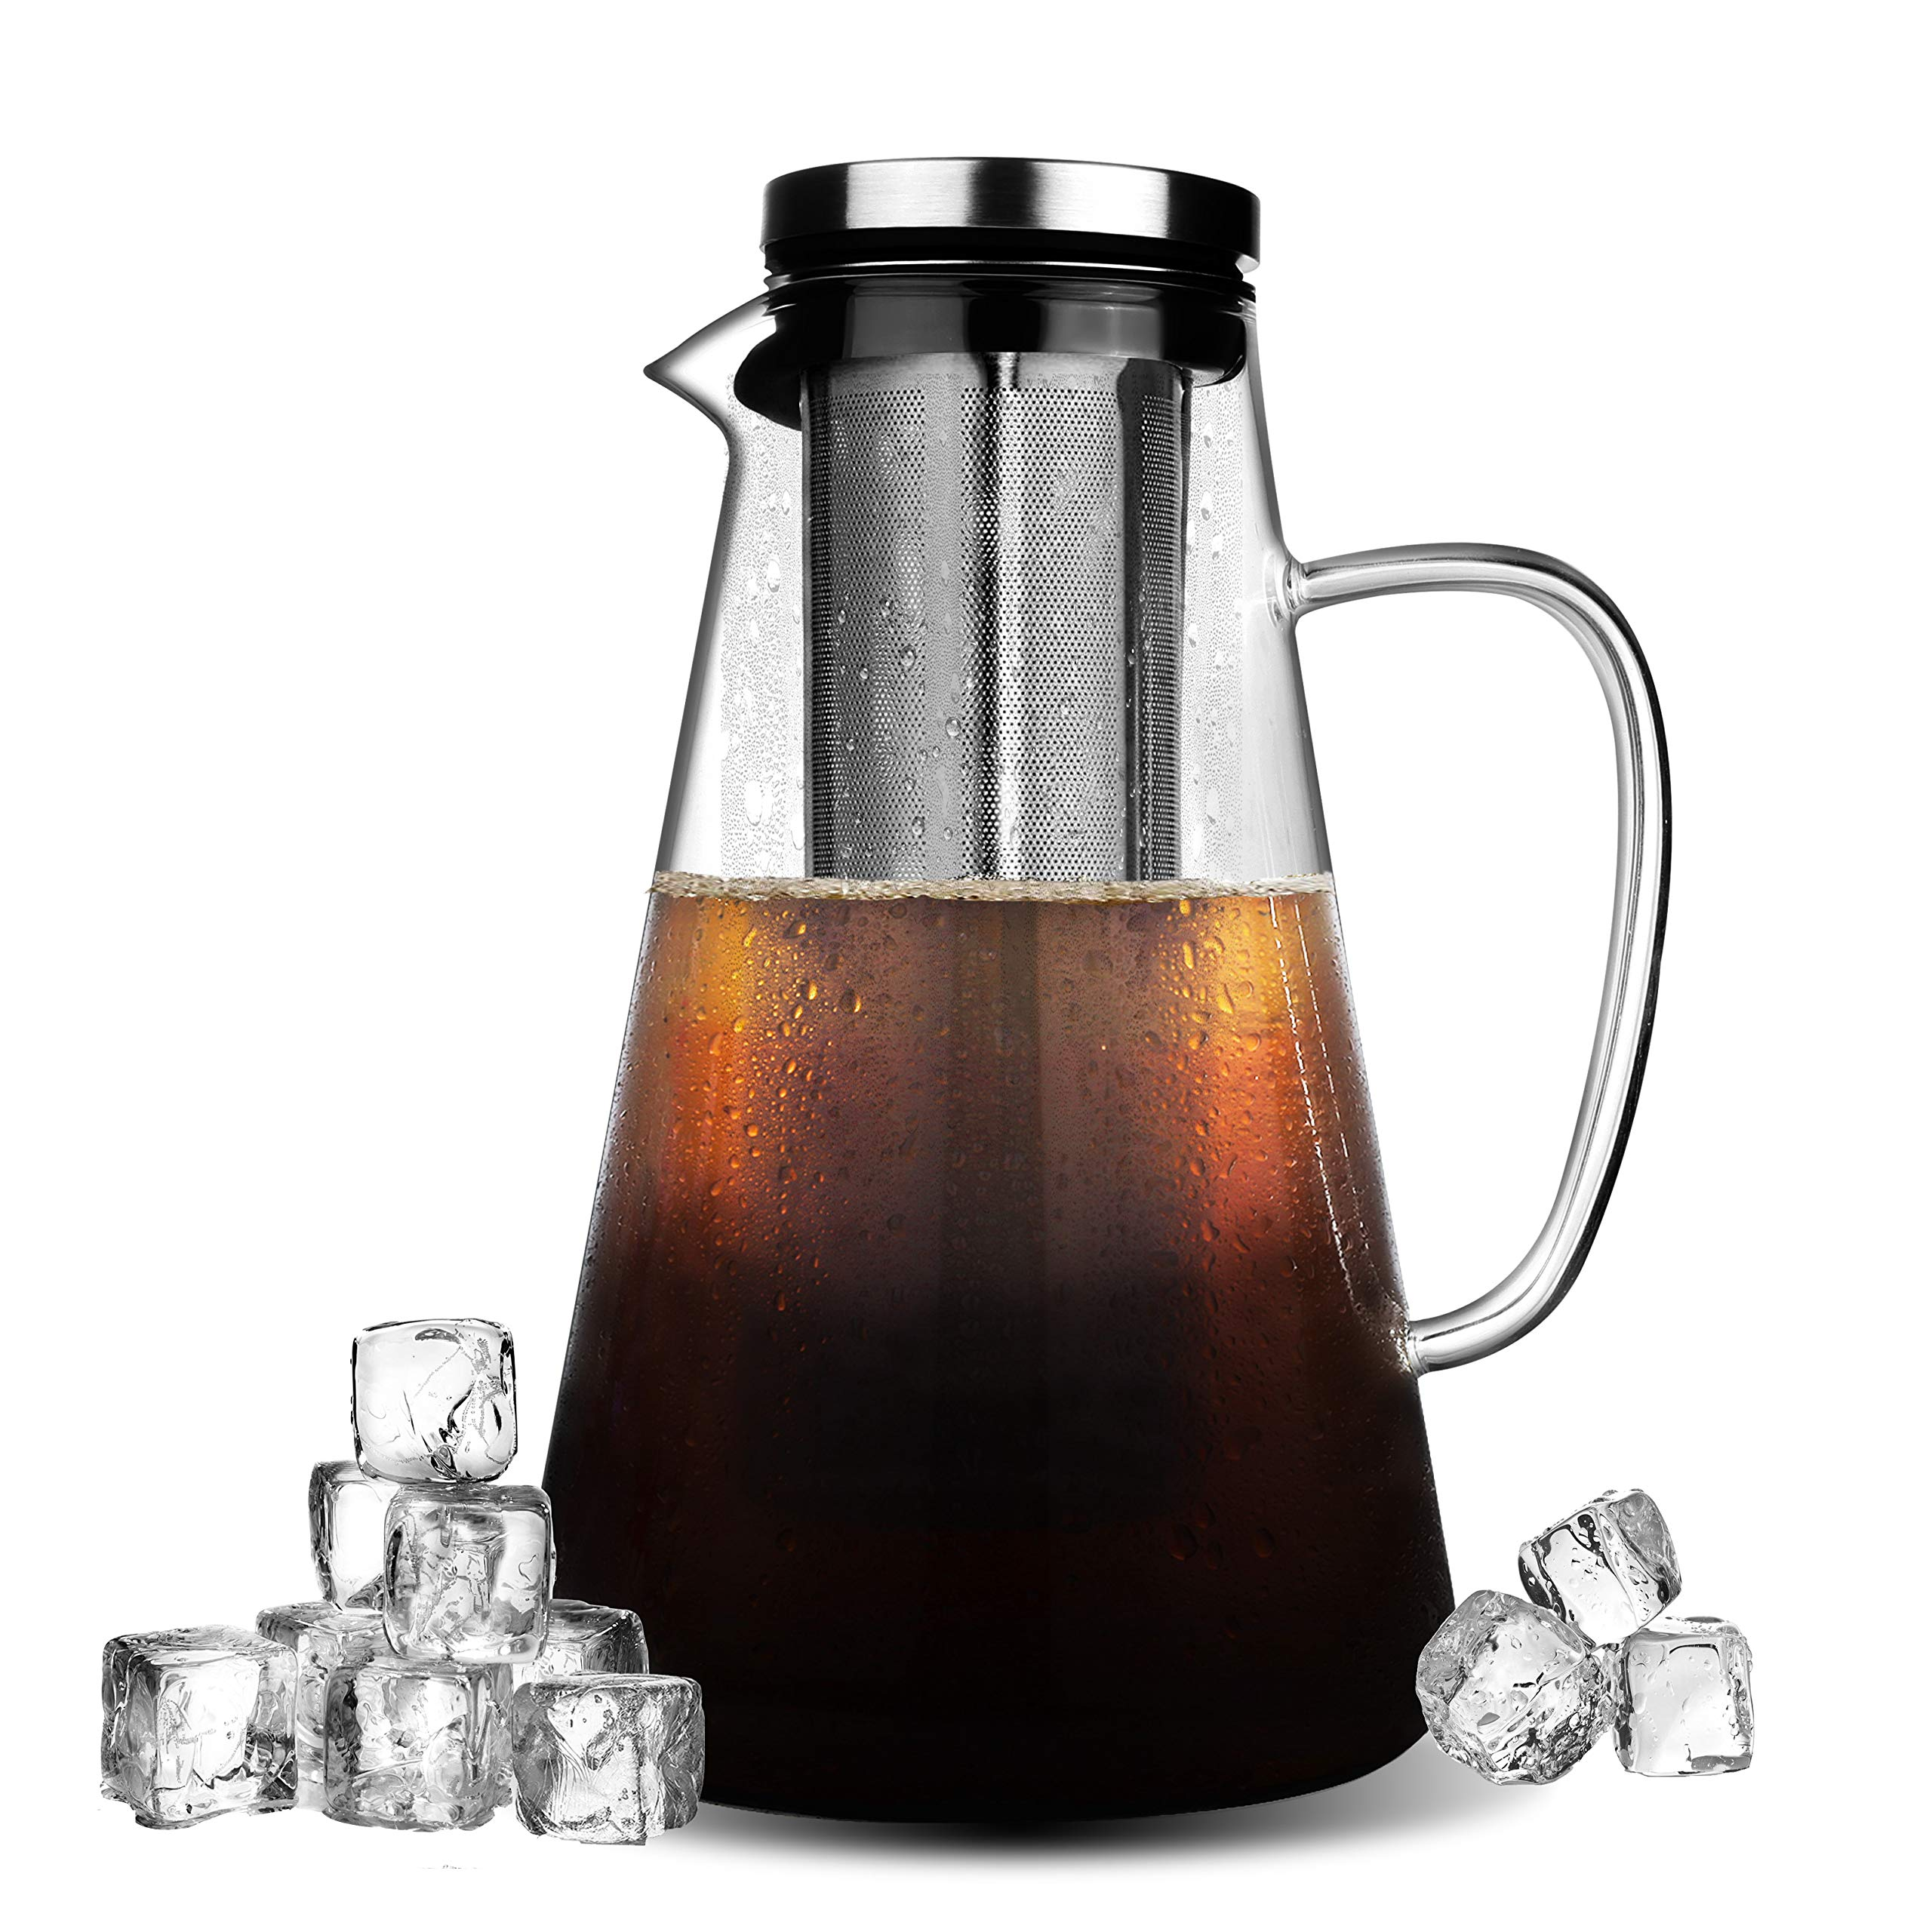 Phyismor Cold Brew Iced Coffee Maker - 1.5L/50oz - Handmade Manual Iced Coffee Tea Maker Pitcher Infuser - Borosilicate Glass Carafe - with Fine Mesh, Removable Stainless Steel Filter by Phyismor